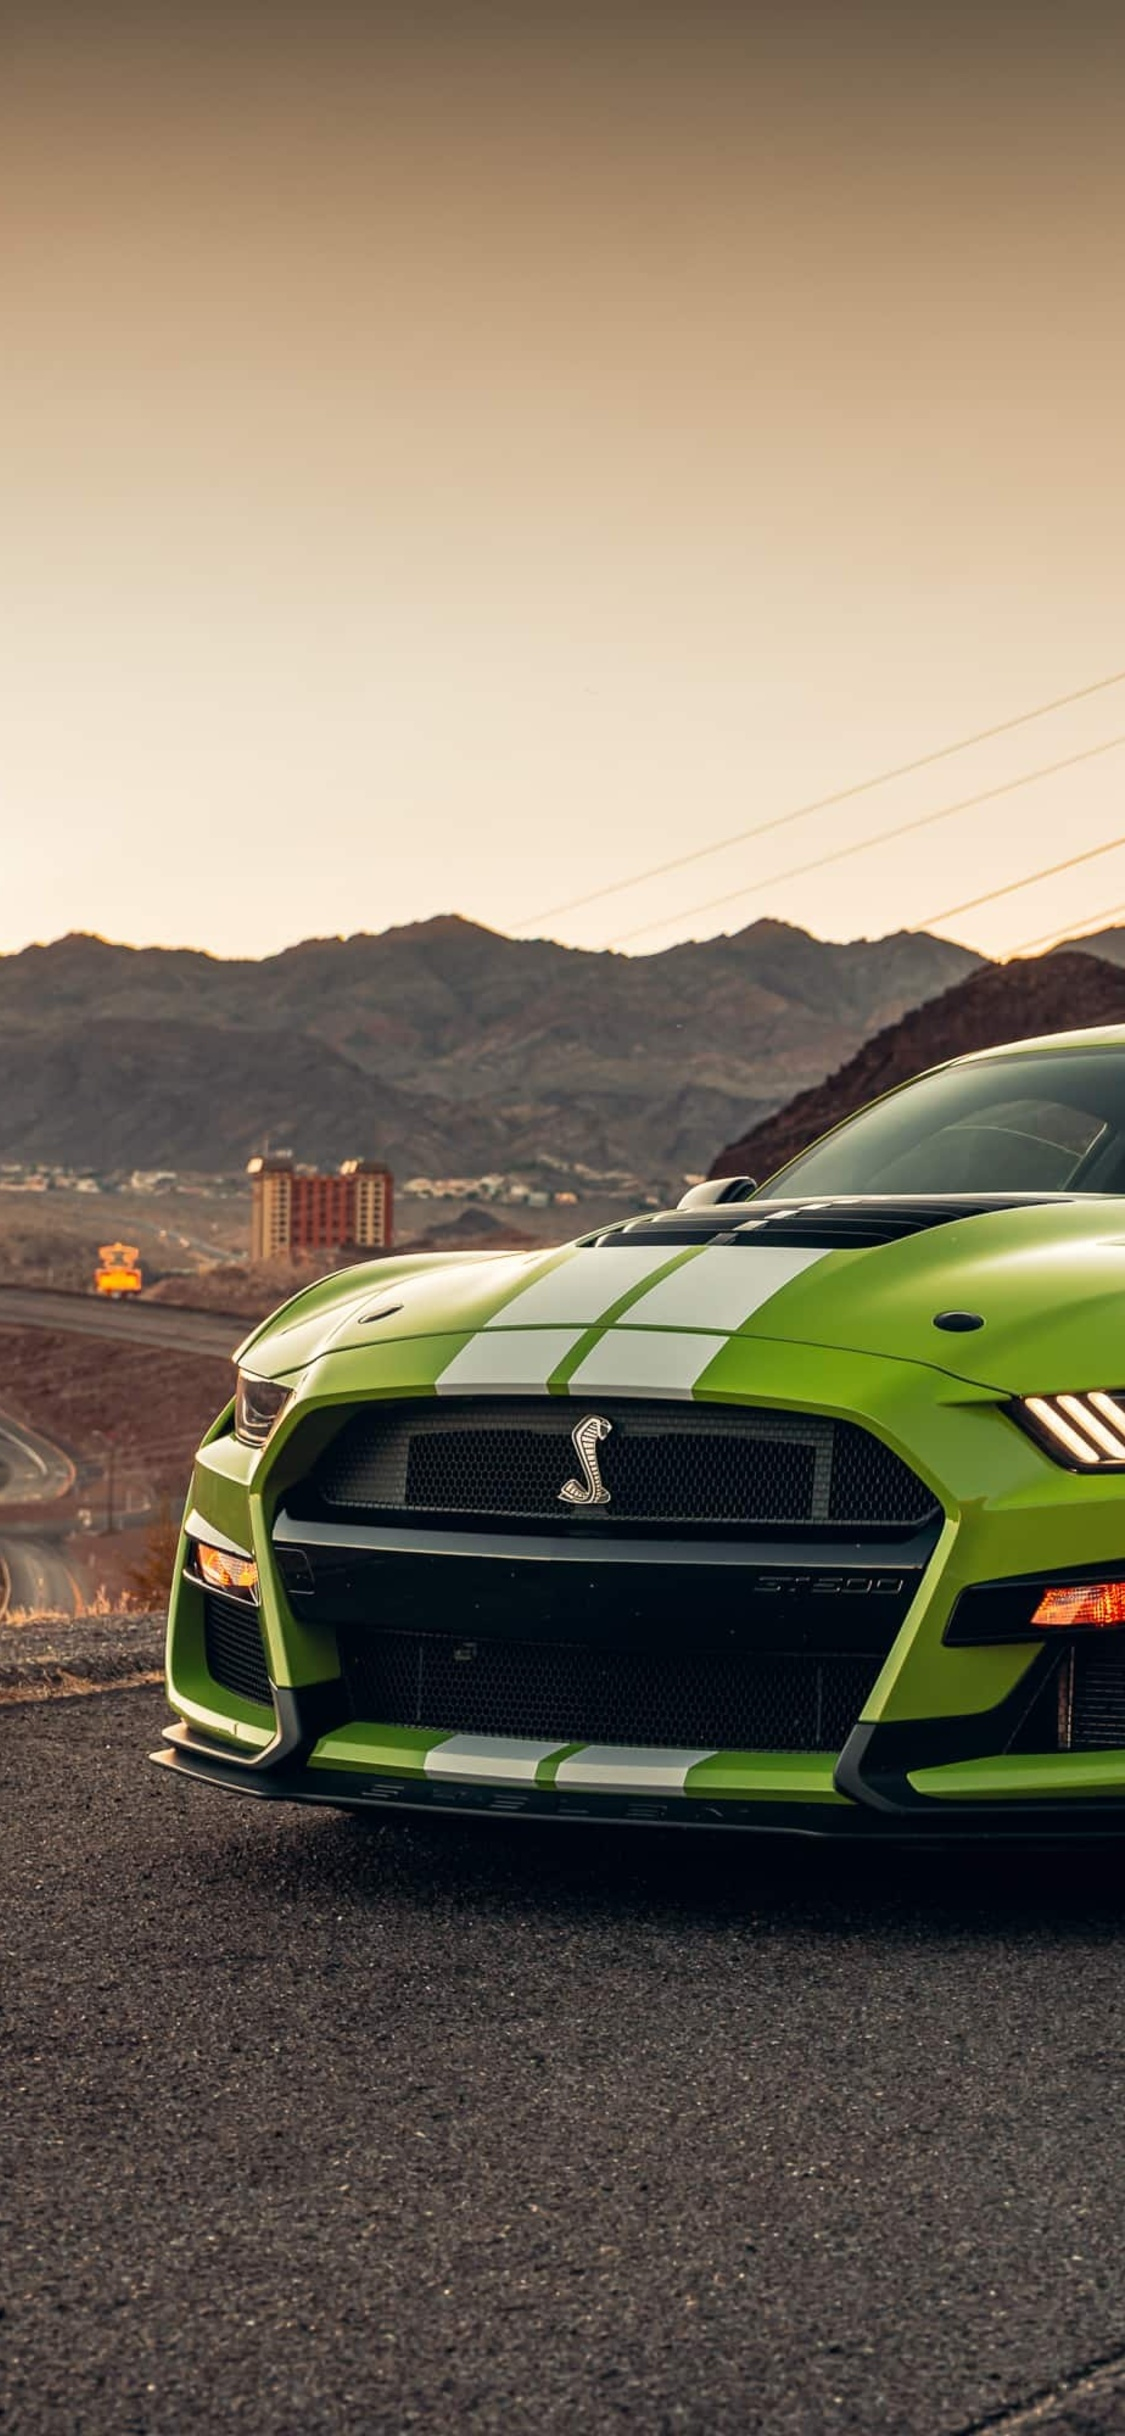 Ford Mustang Wallpaper Iphone X